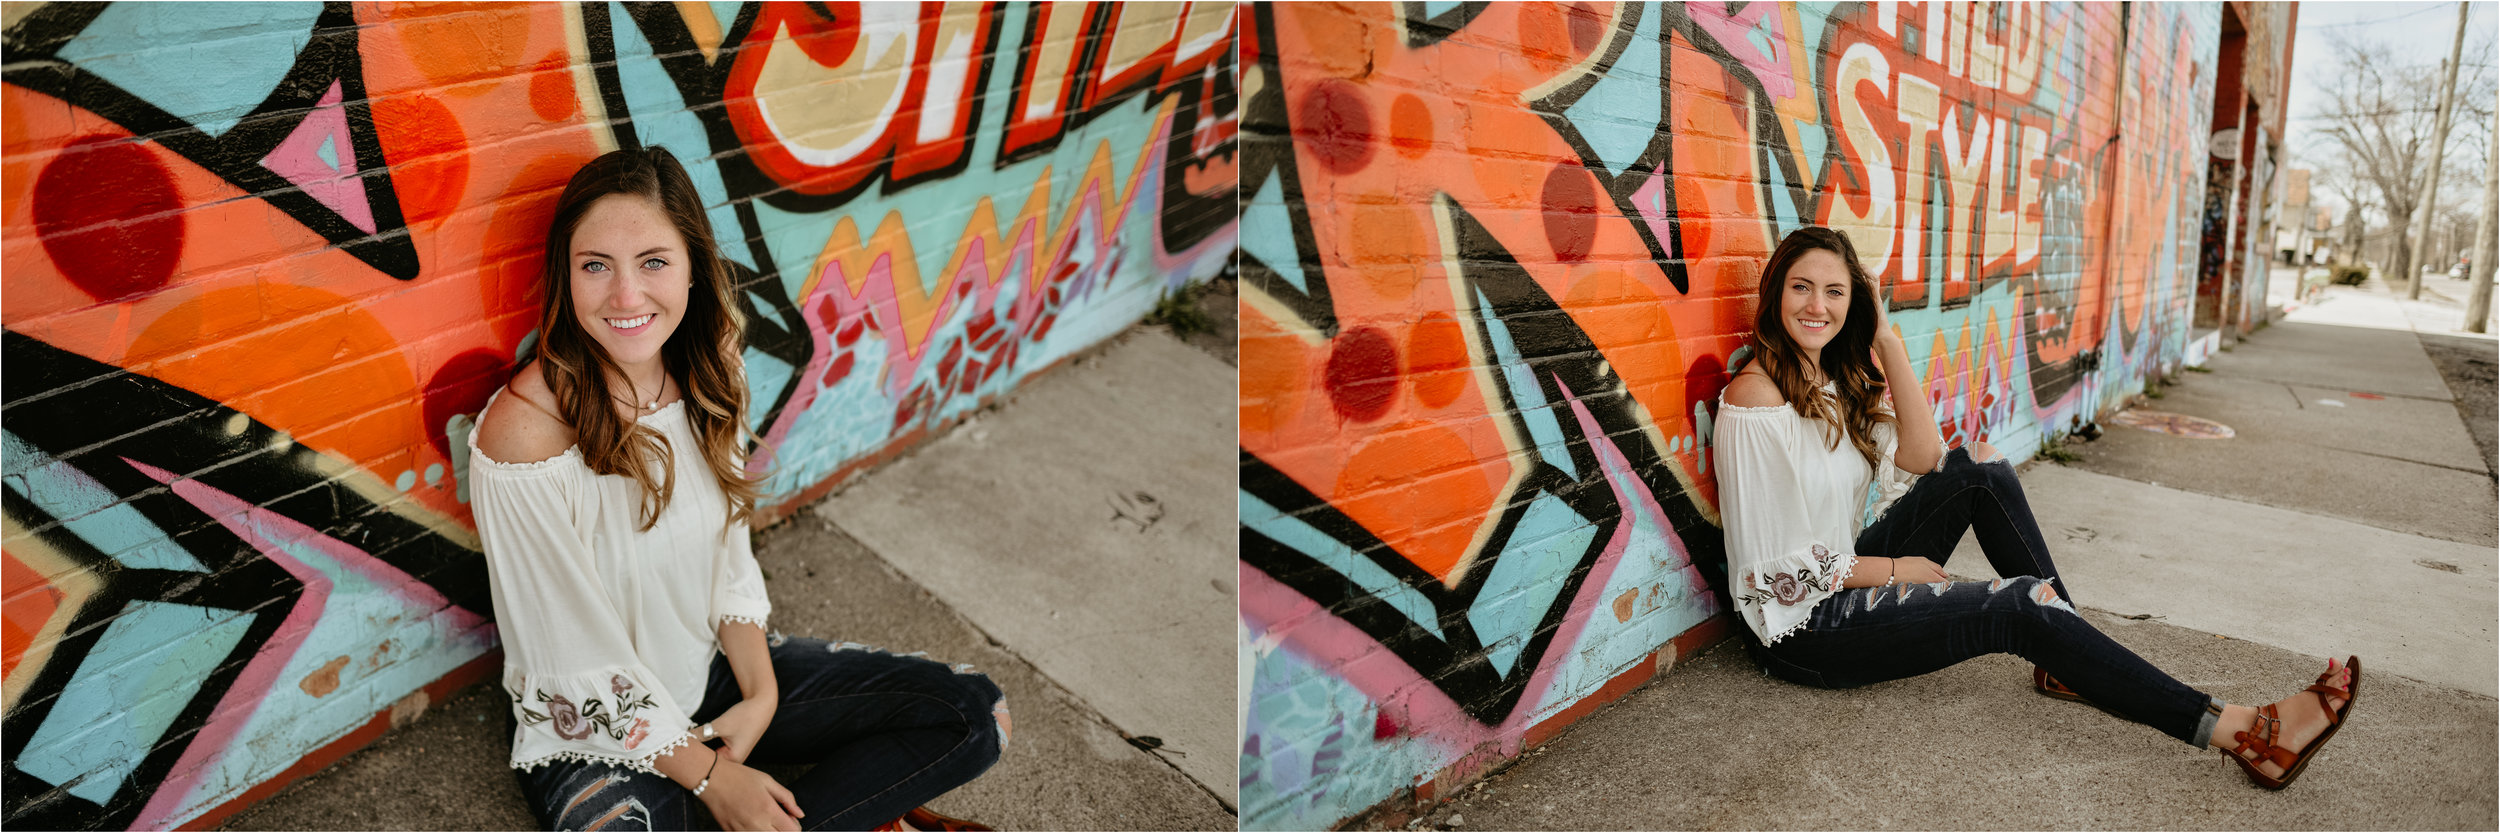 Like OH-M-GEE these walls are seriously amazing. Whoever painted these is sure full of talent!